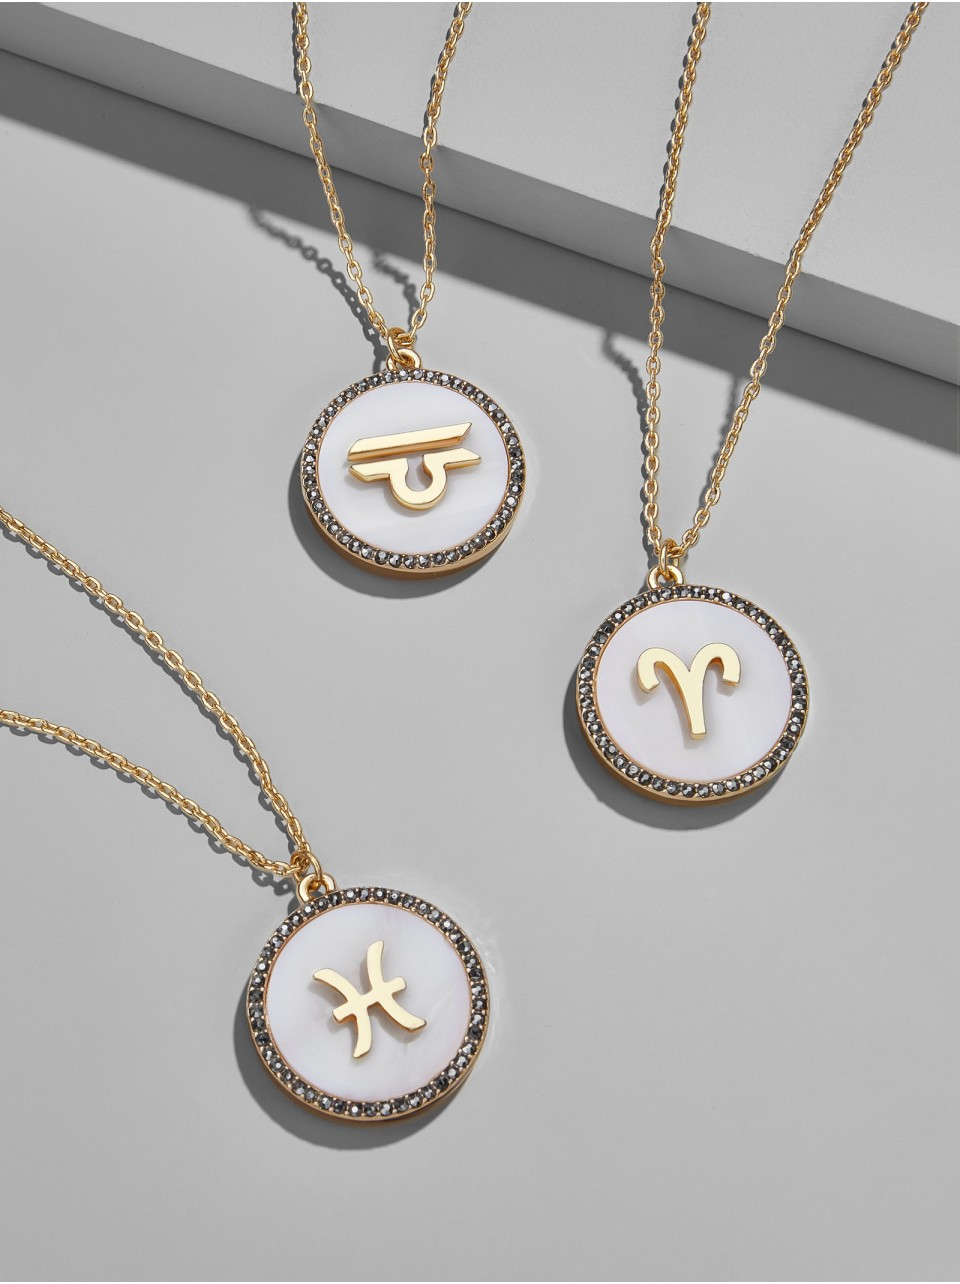 Zodiac_Necklace.jpg